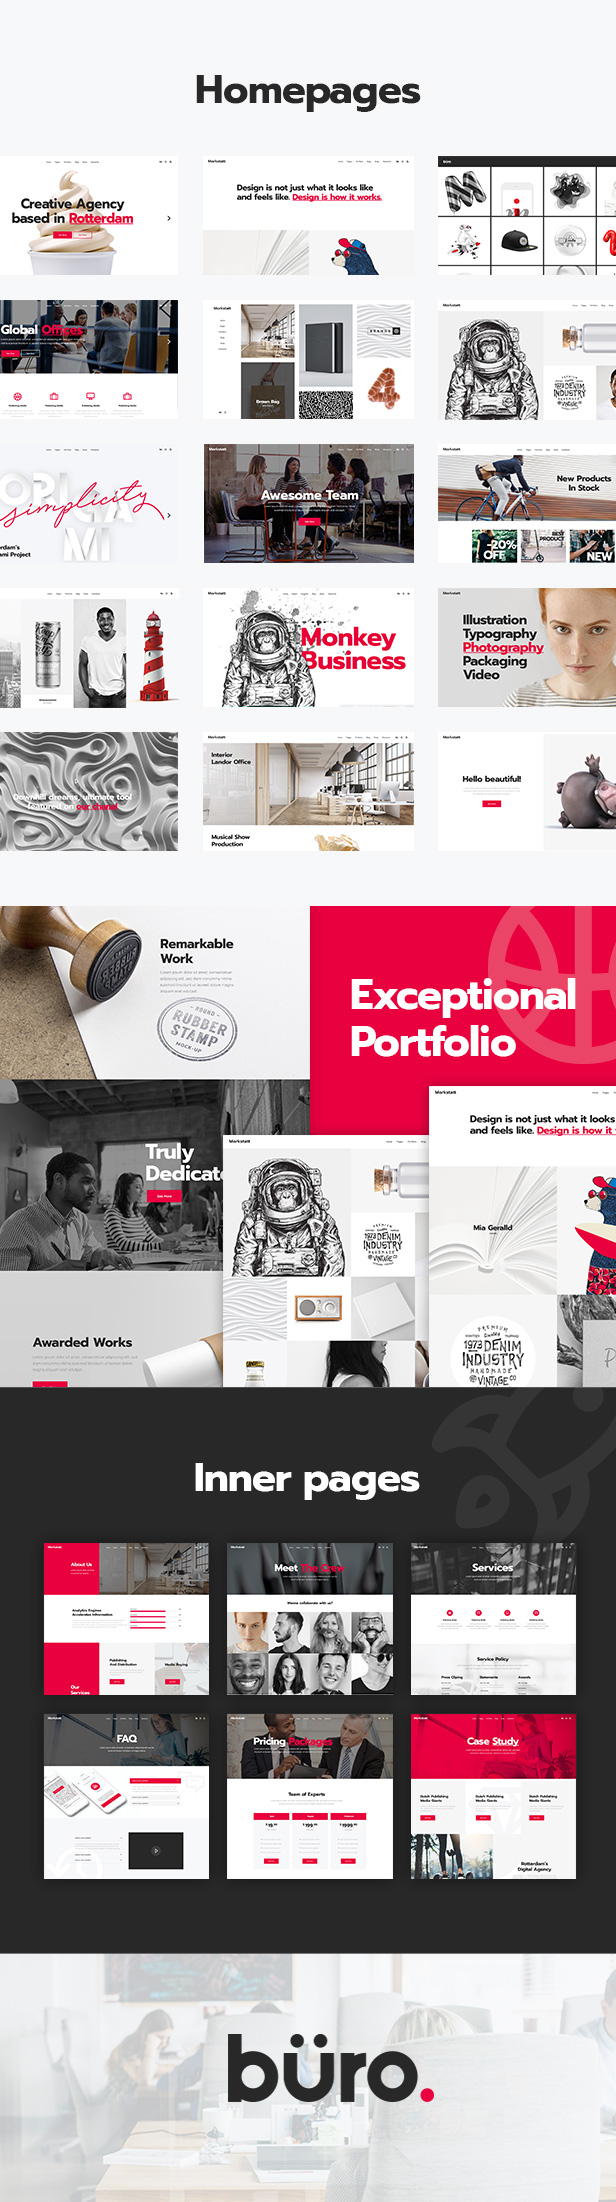 Büro - Creative Agency and Freelancer Theme - 1